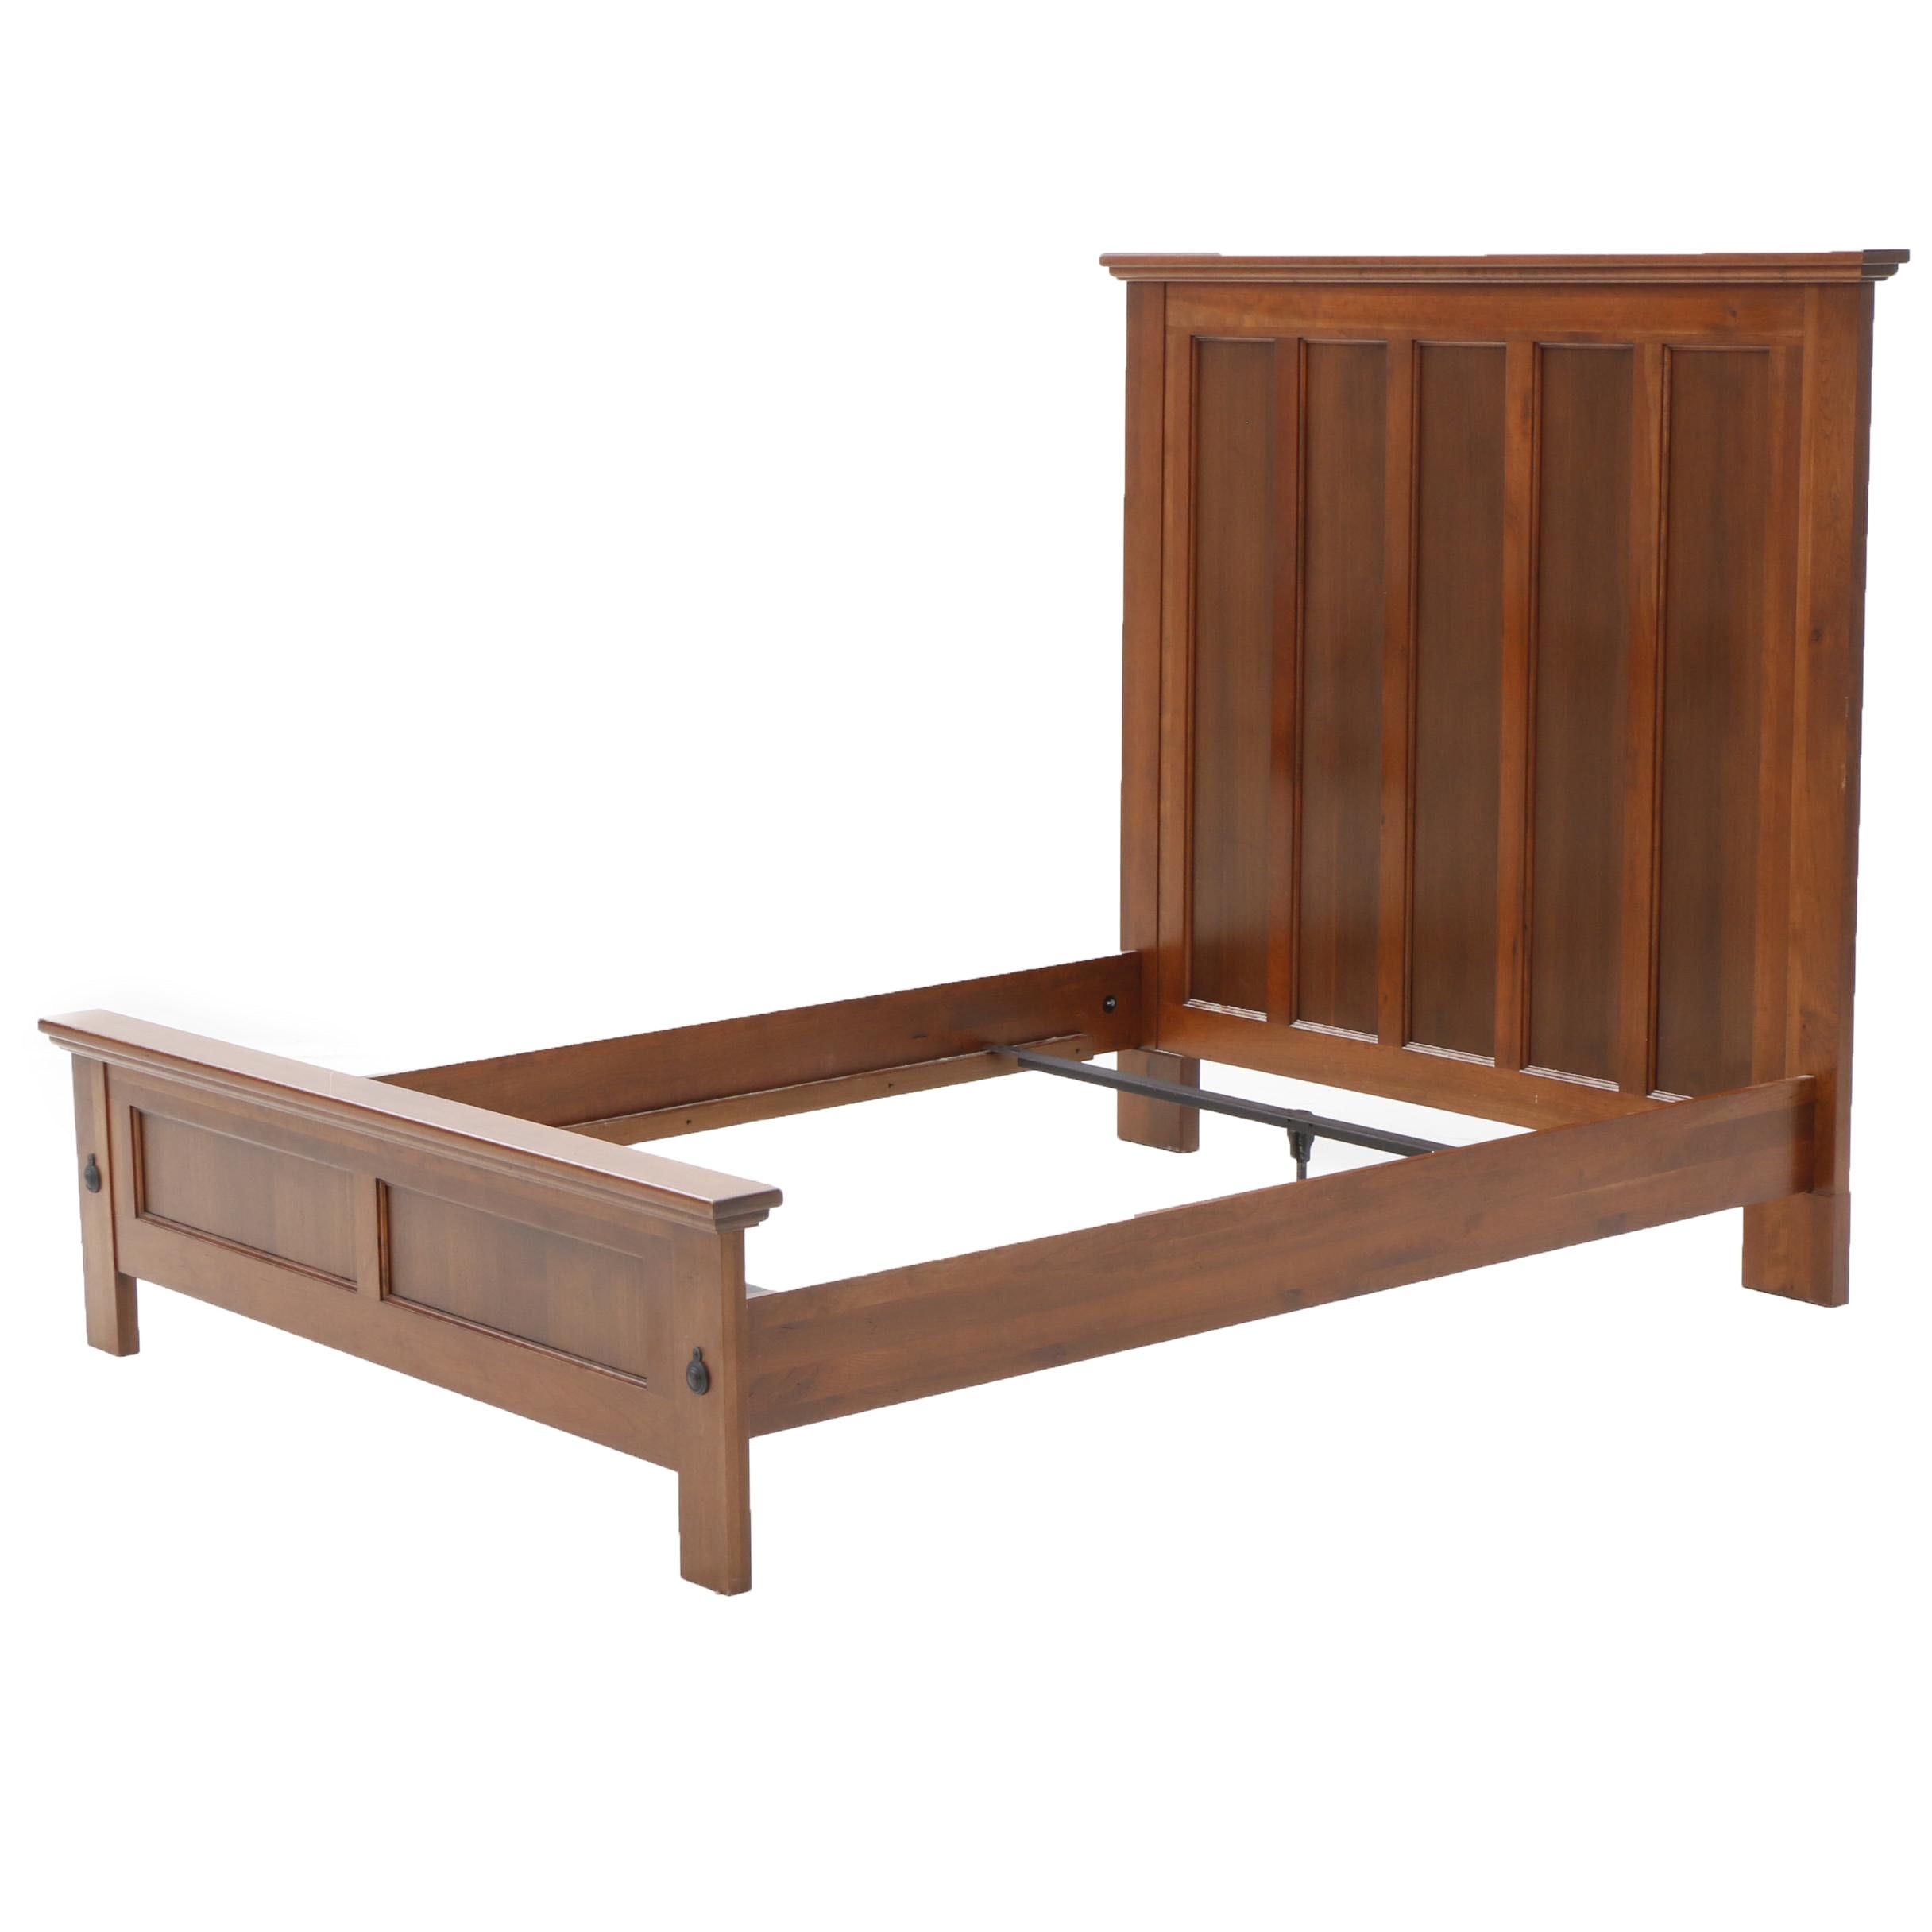 Mission Style Mahogany Veneer Queen Bed Frame, Late 20th Century